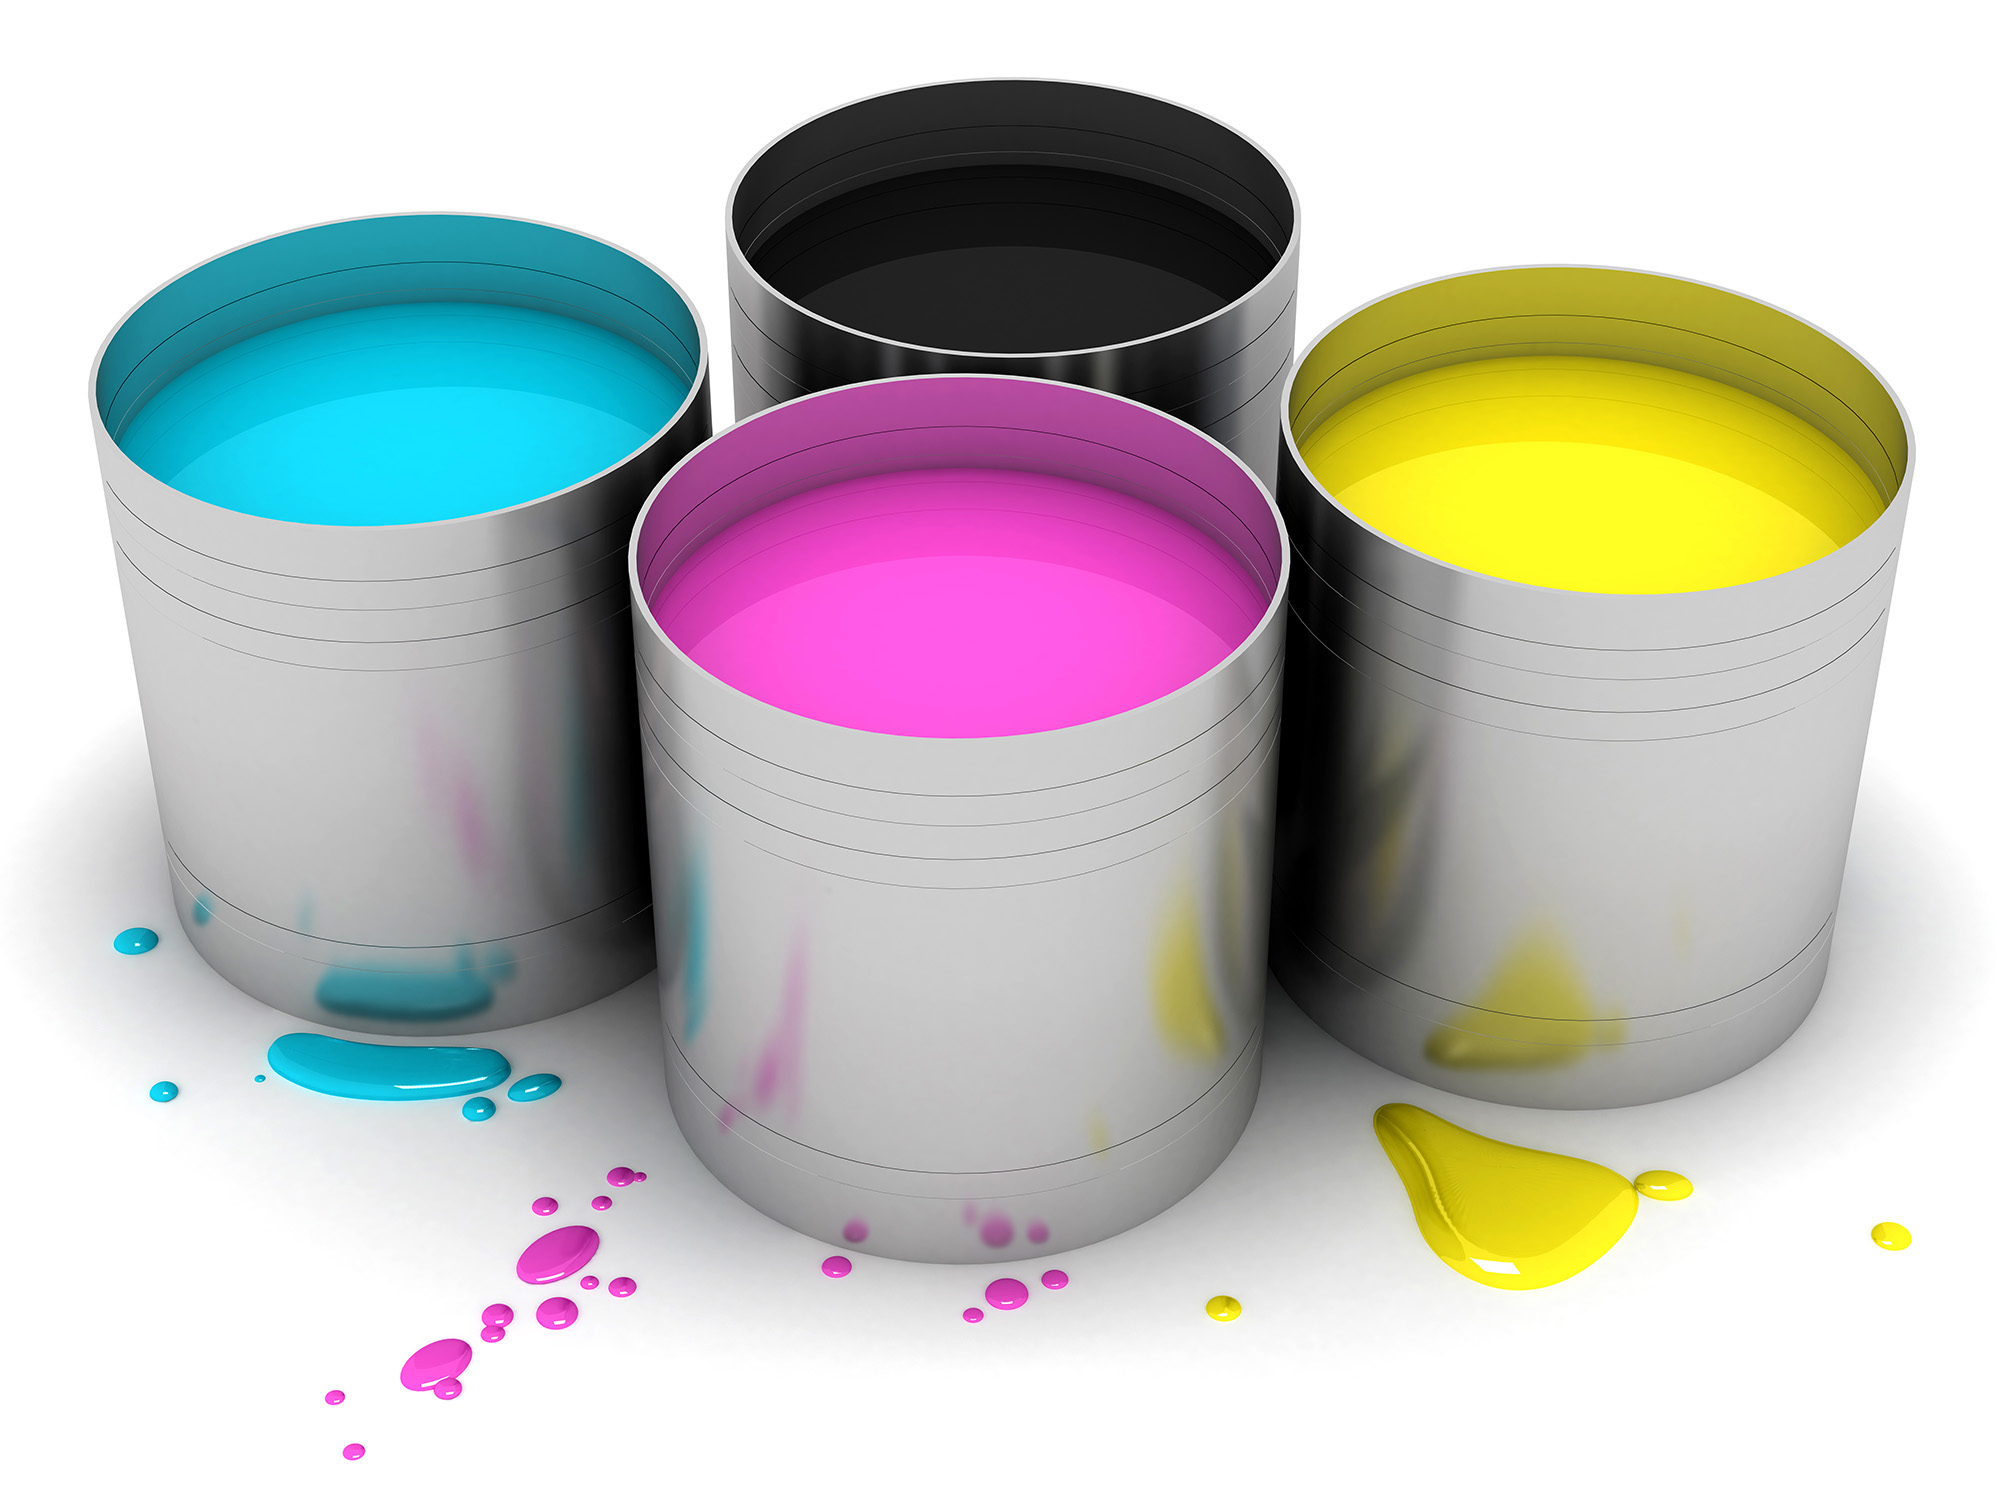 CMYK Cans With Color Paint